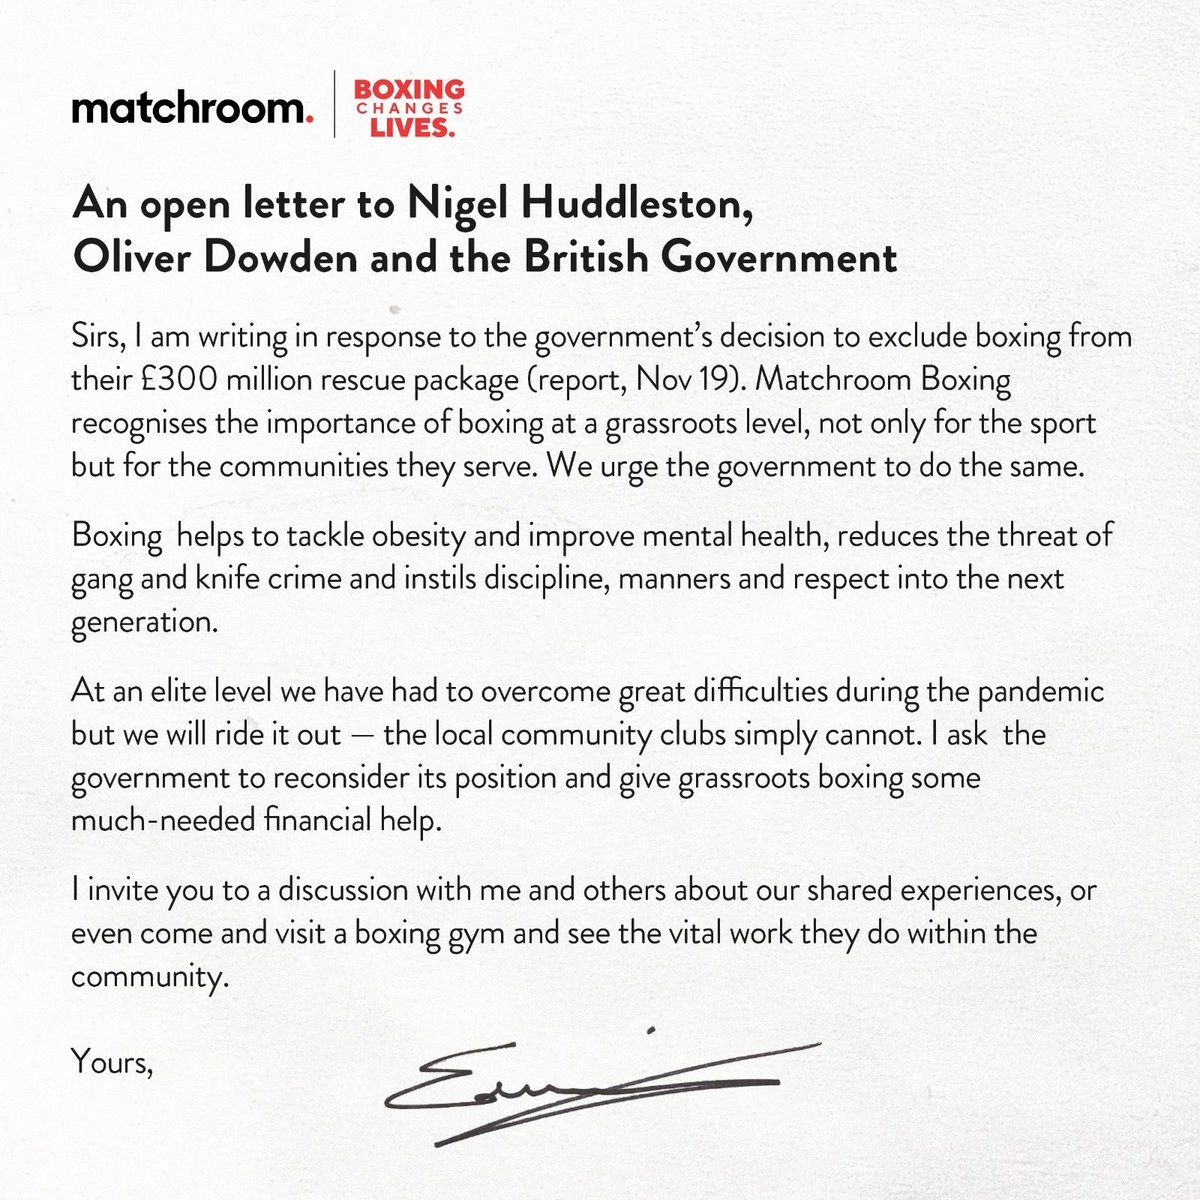 Today, I have written to @HuddlestonNigel @OliverDowden in the hope they consider including grass roots boxing in the Government rescue package for sport. I strongly believe that our sport is unique in the role it plays within the community.